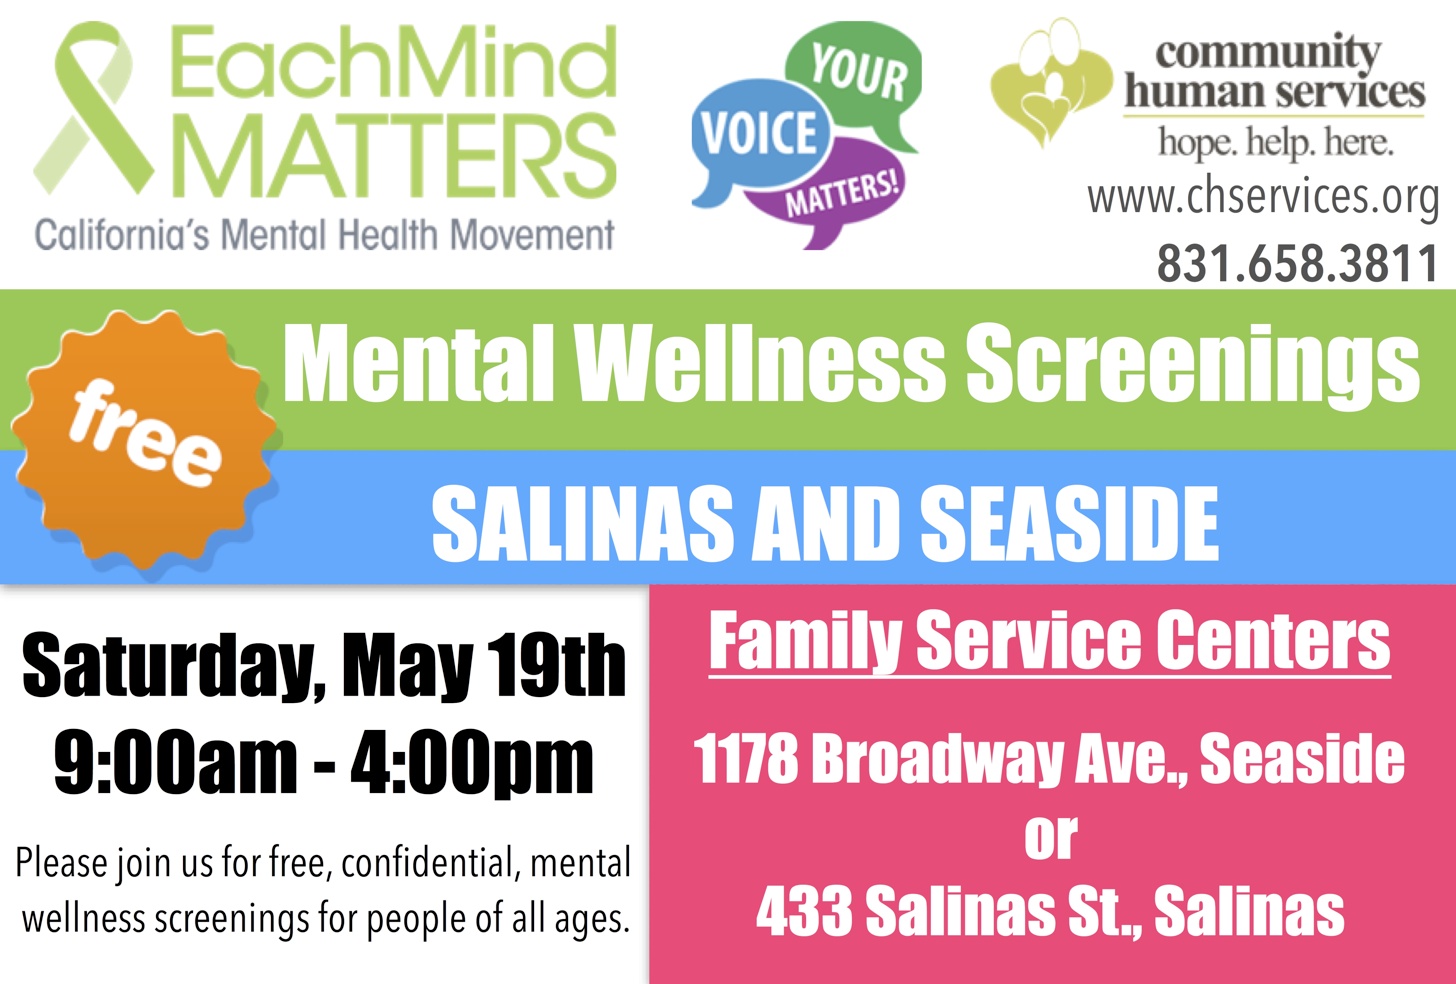 Free Mental Wellness Screenings Community Human Services